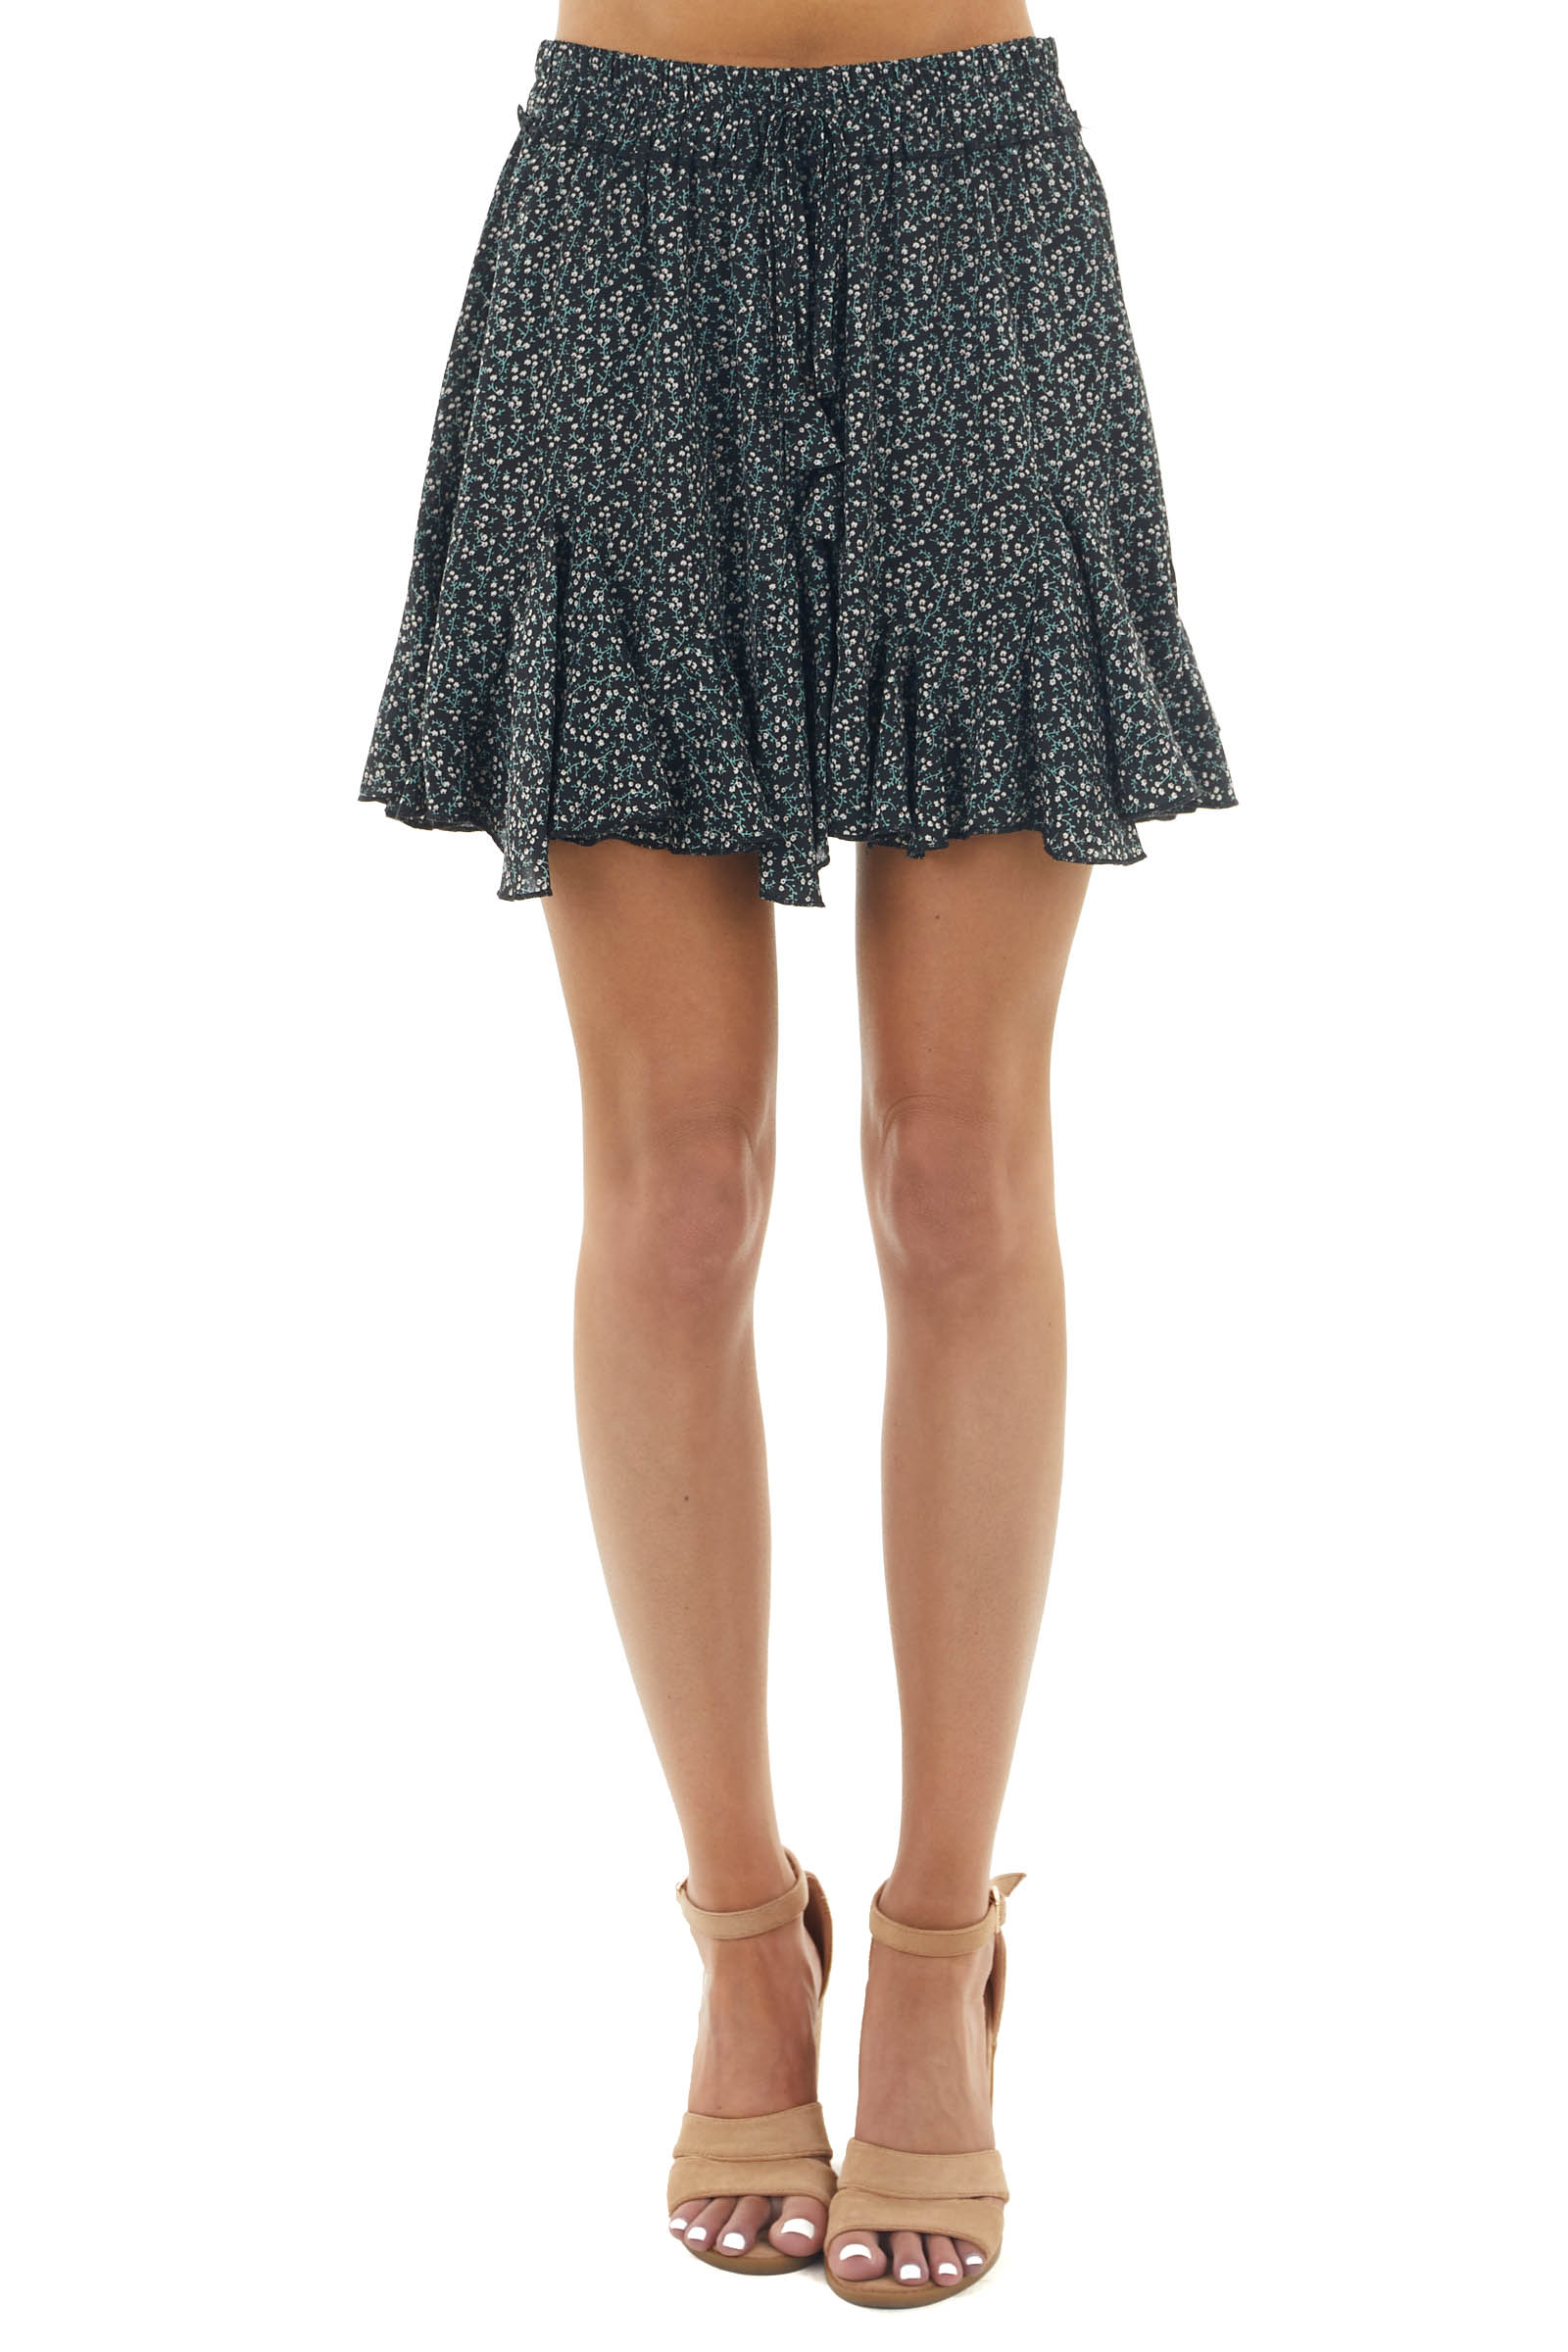 Black Ditsy Floral Flounce Hem Mini Skirt with Front Tie